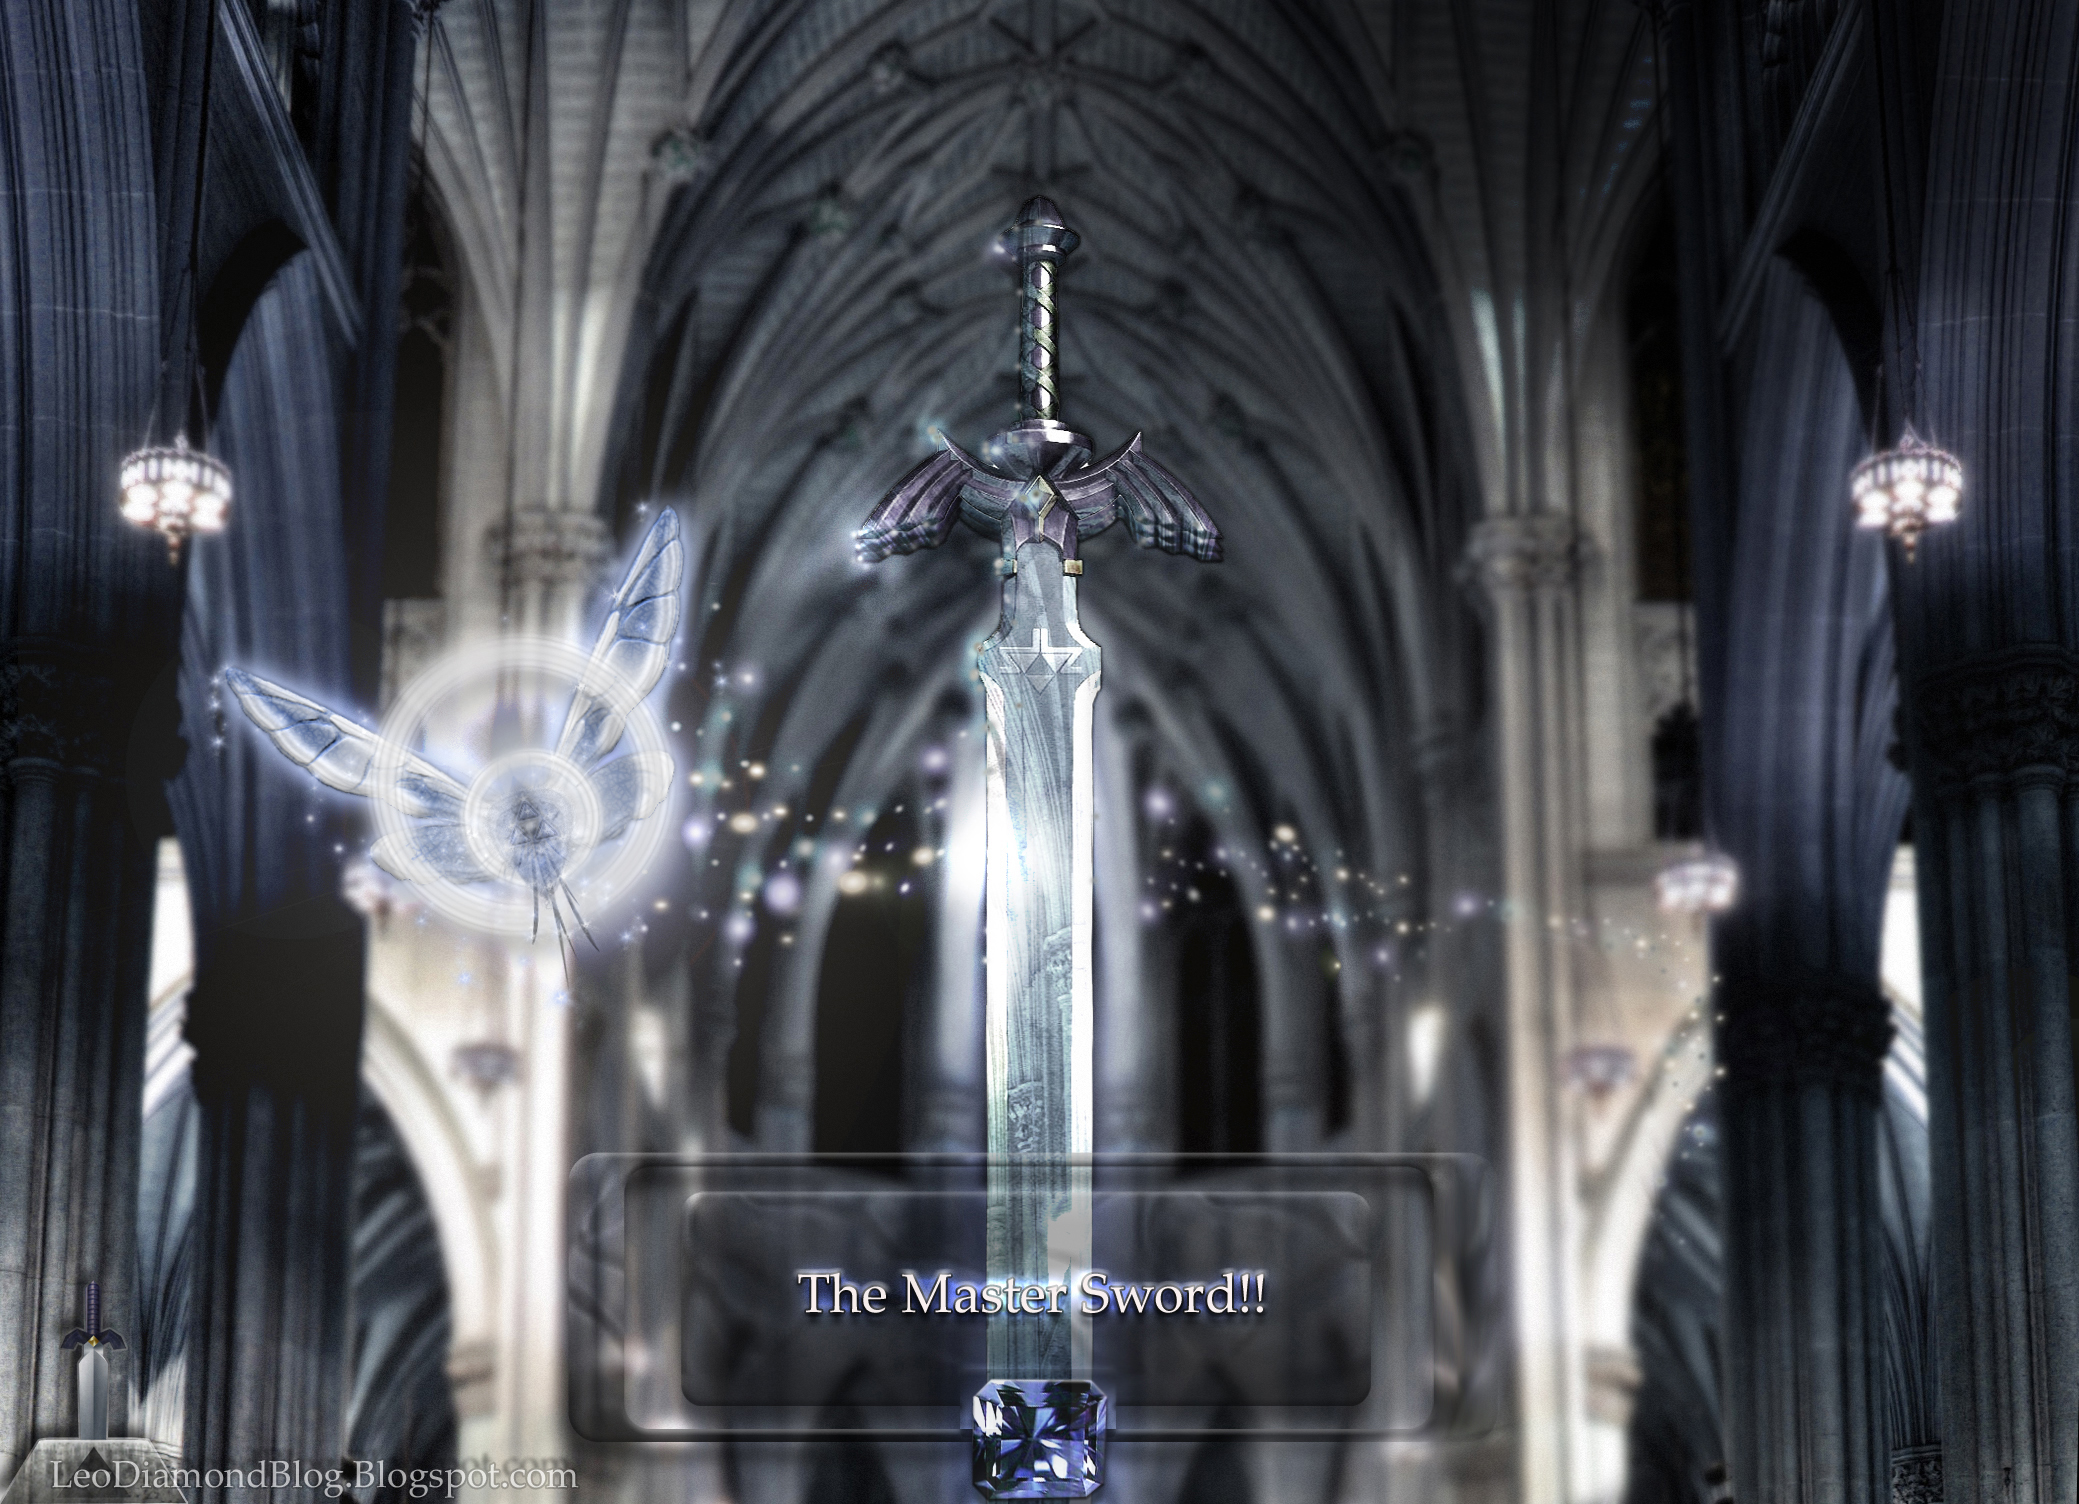 ~The Master Sword!! by LeoDiamond